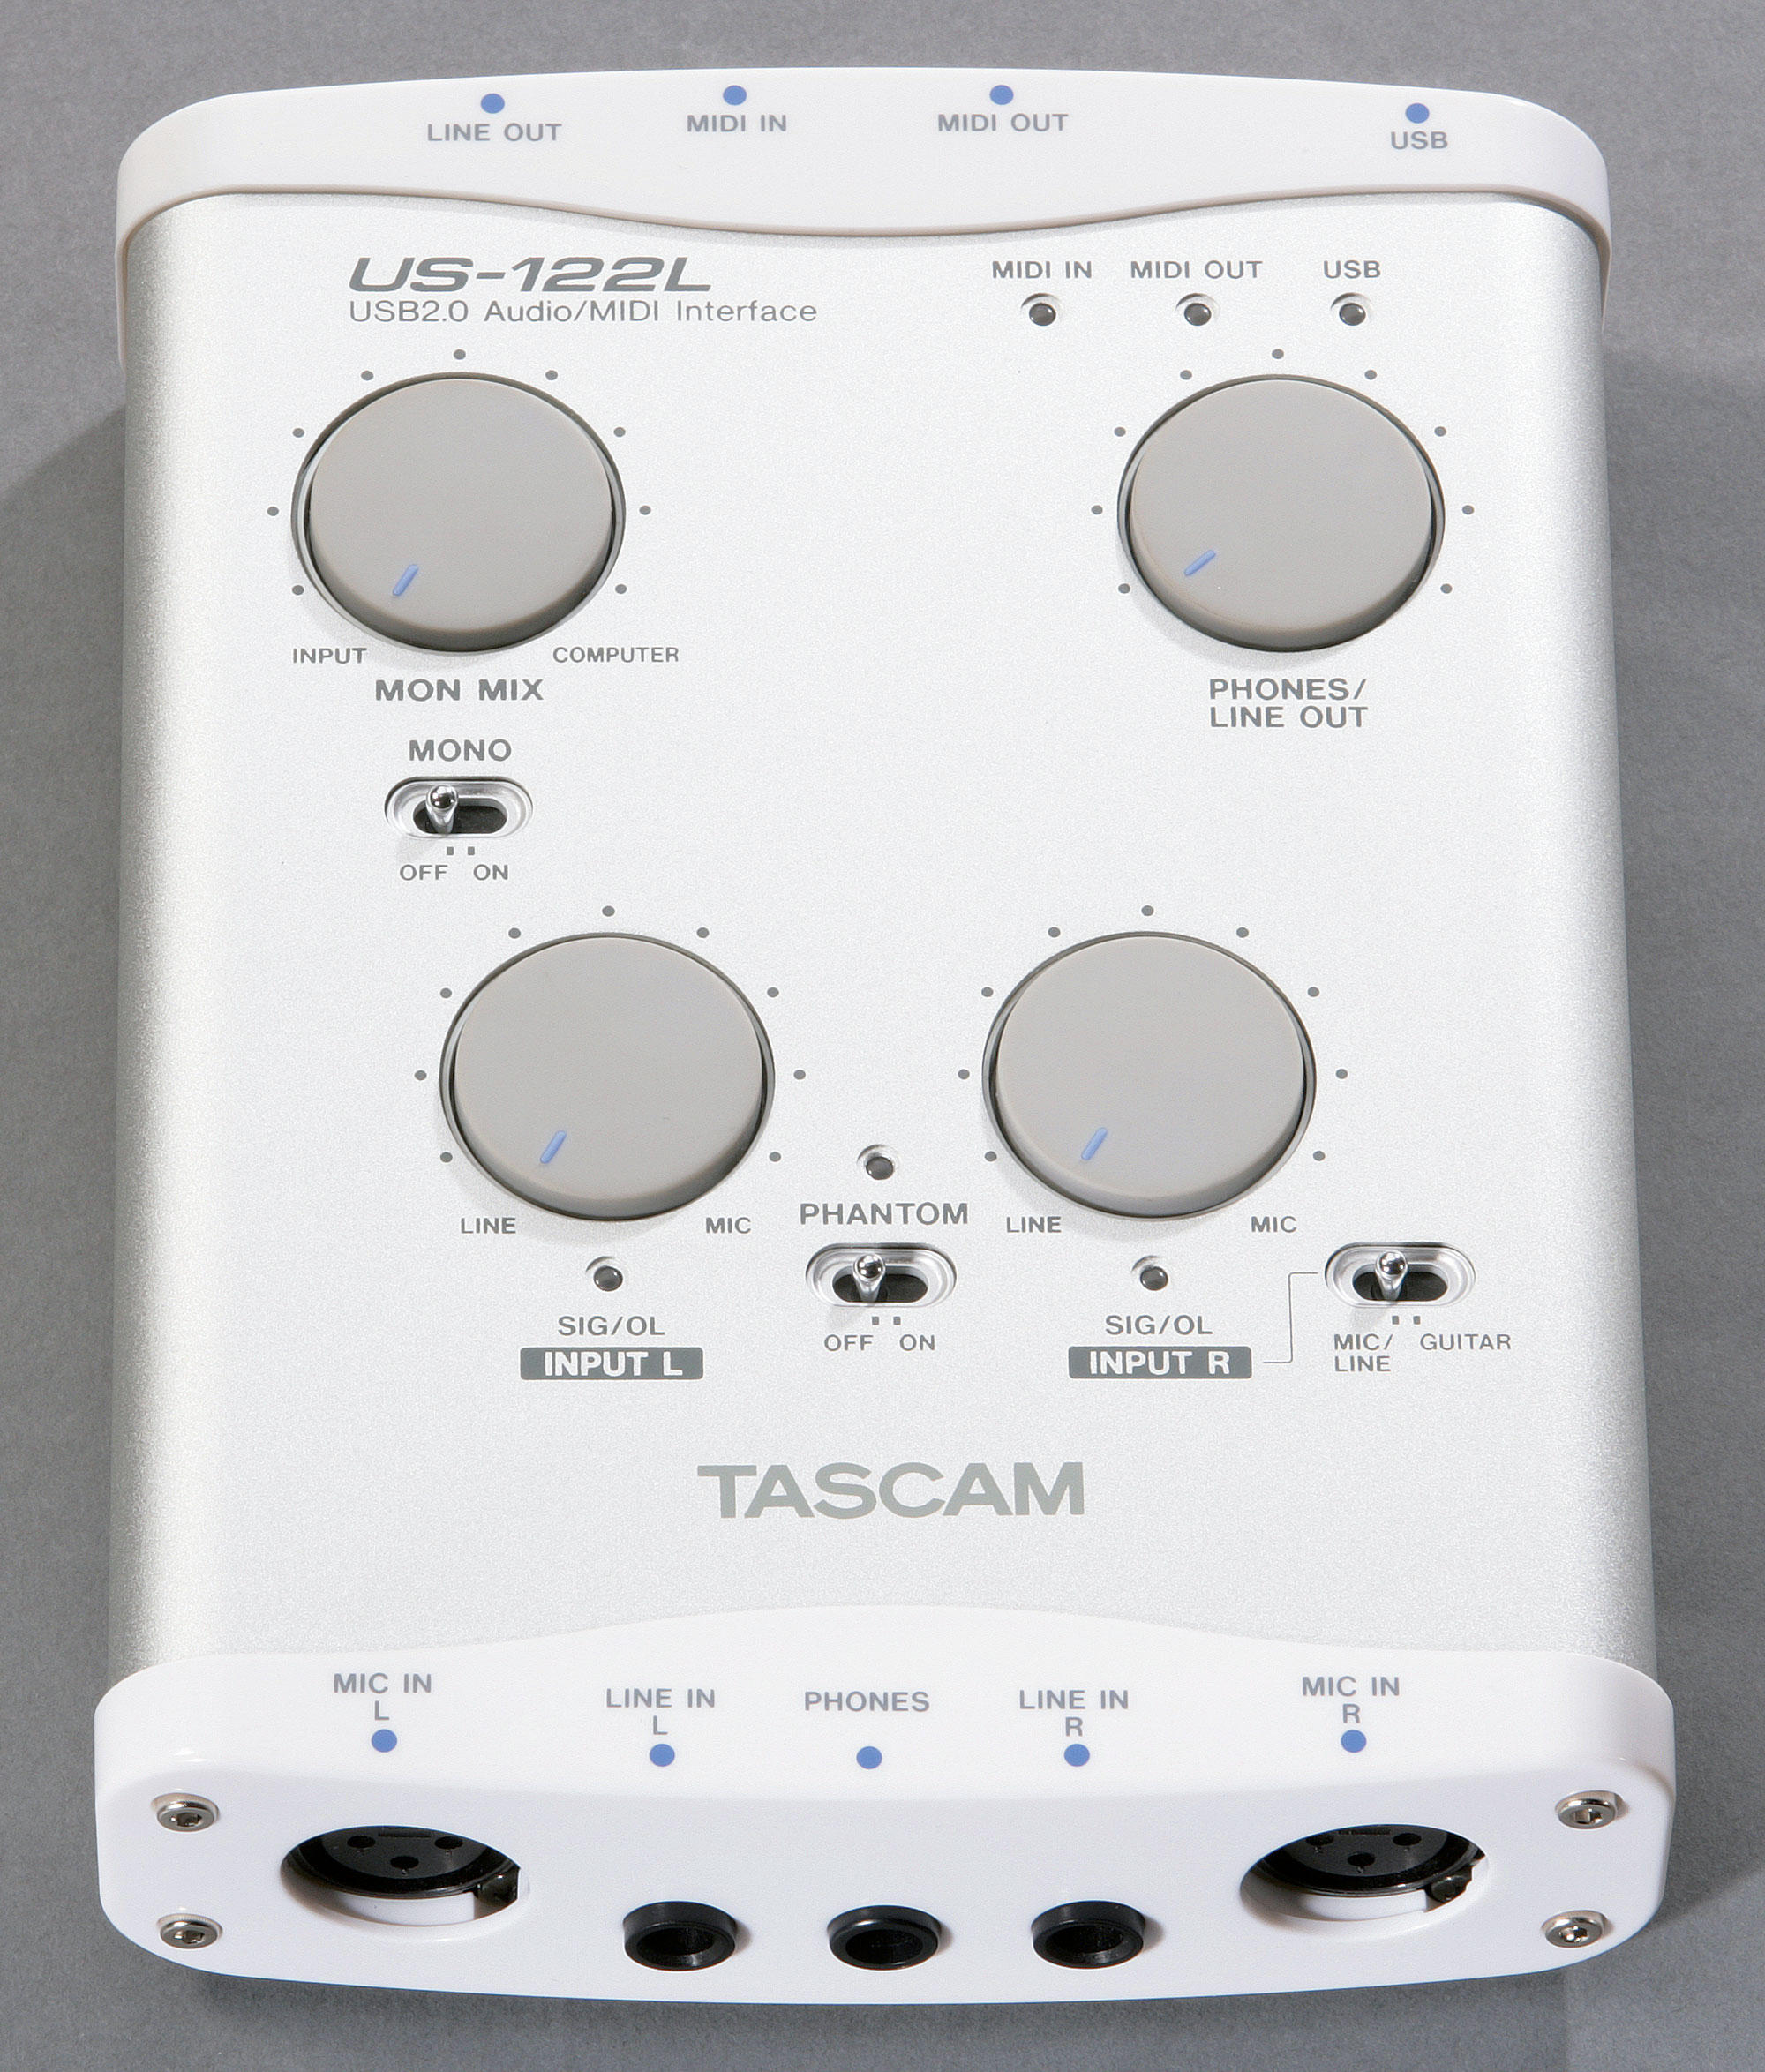 TASCAM New USB 2.0 Audio/MIDI Interfaces